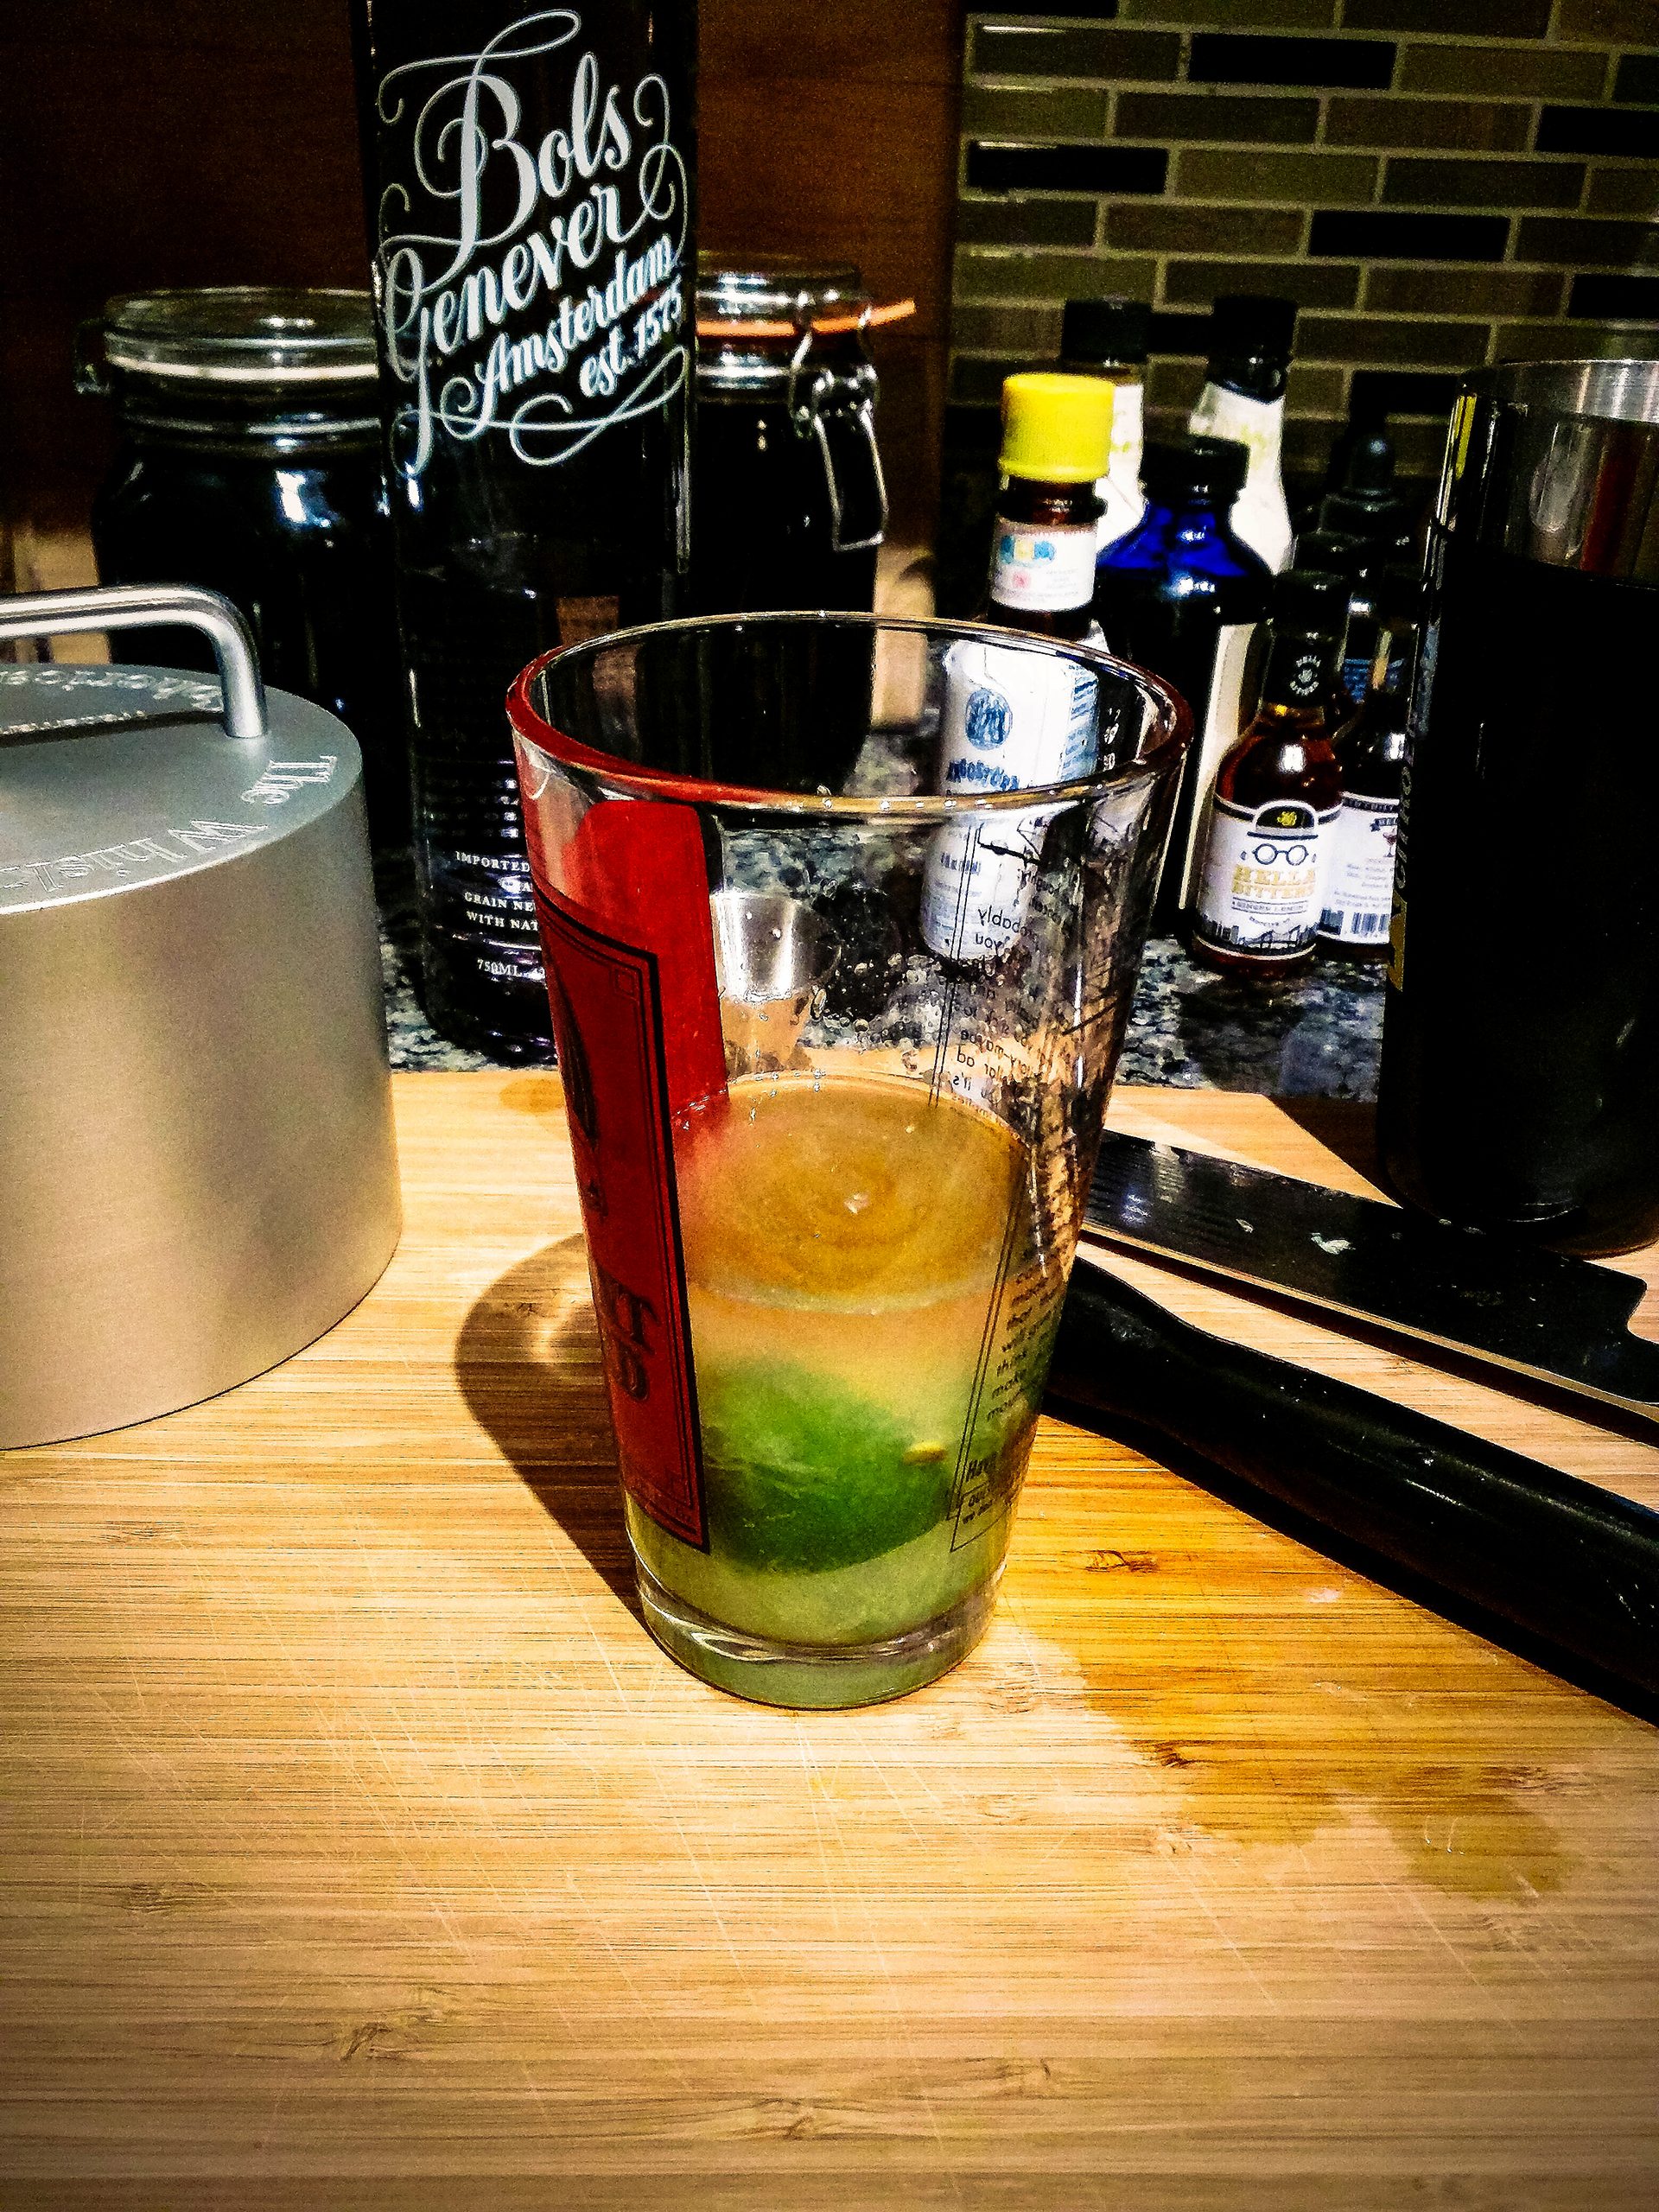 Good and limey, now with four dashes of Angostura bitters.